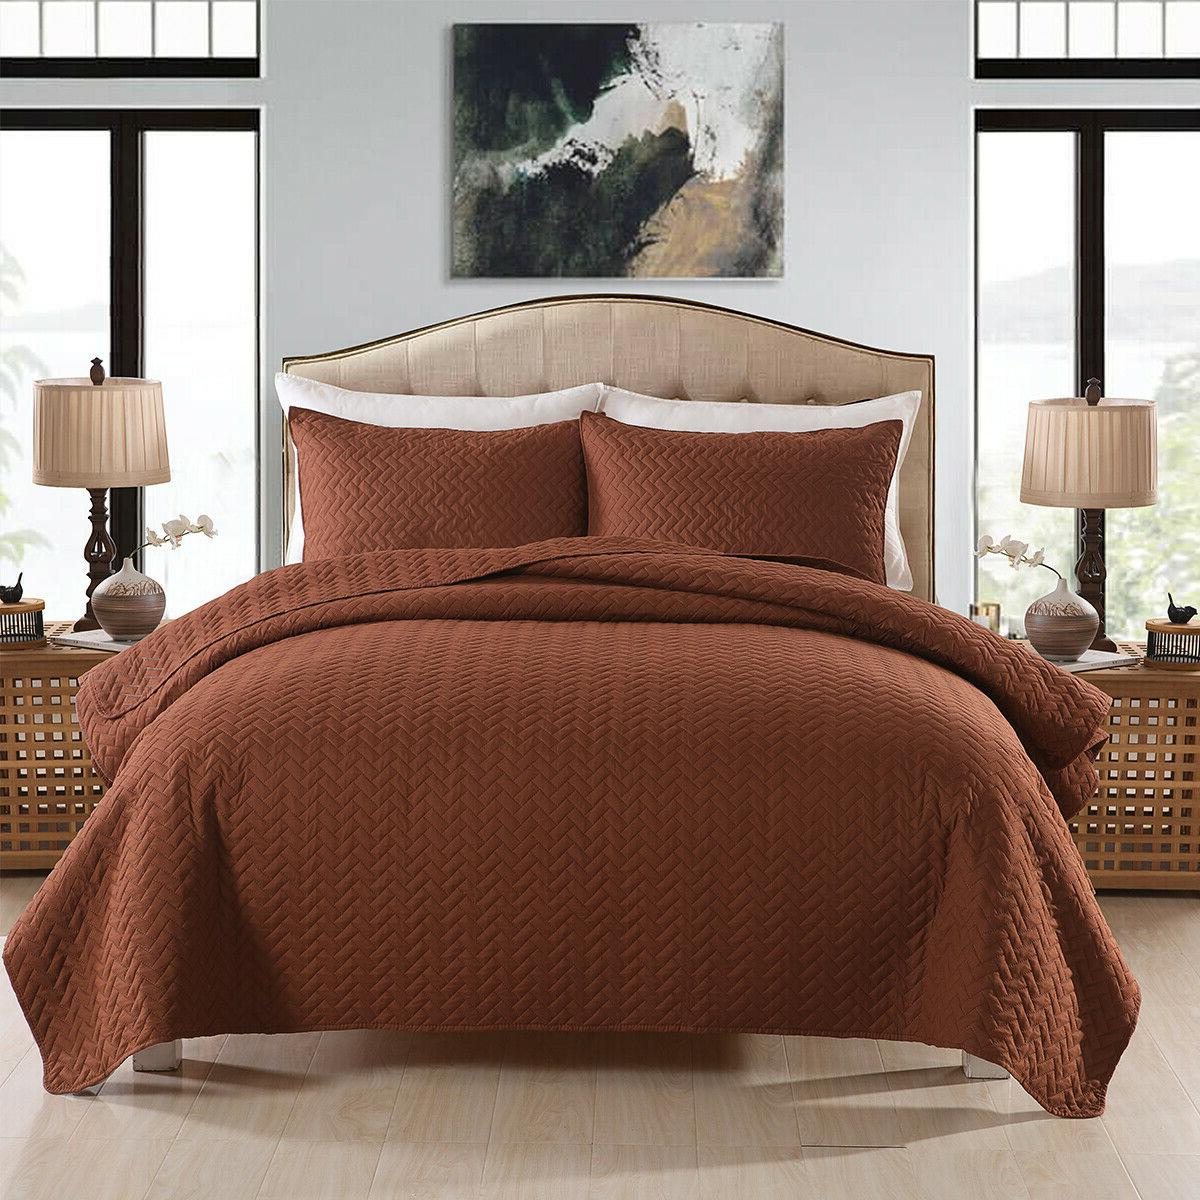 3-Piece Quilt Set with Pillow Weave